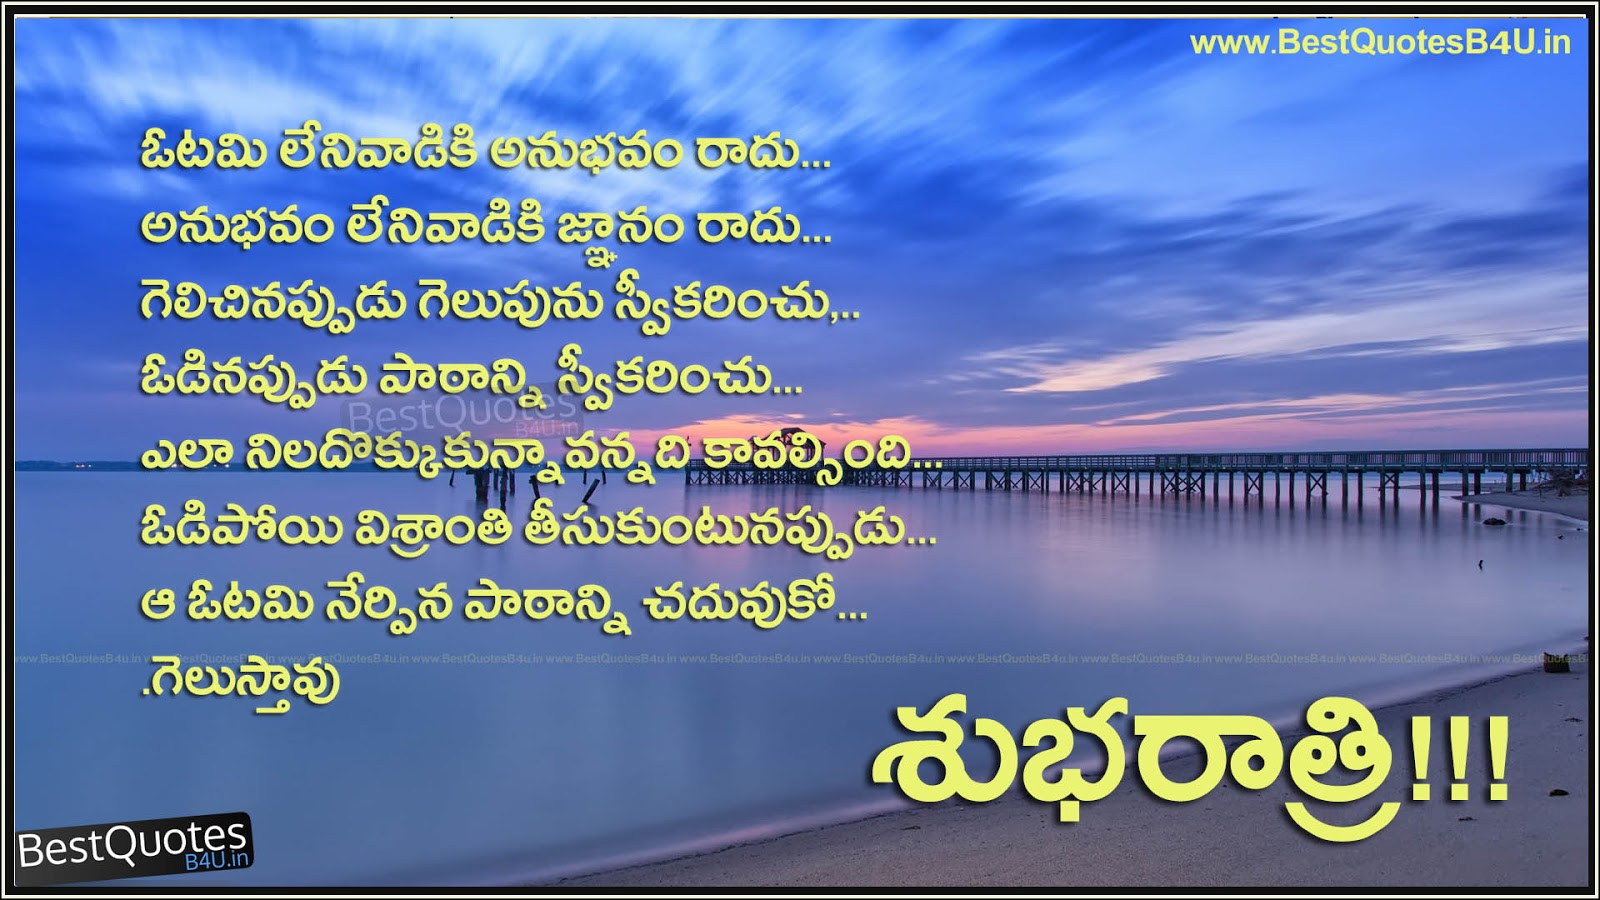 Telugu Best Good Night Quotes Greetings For Friends Bestquotesb4u